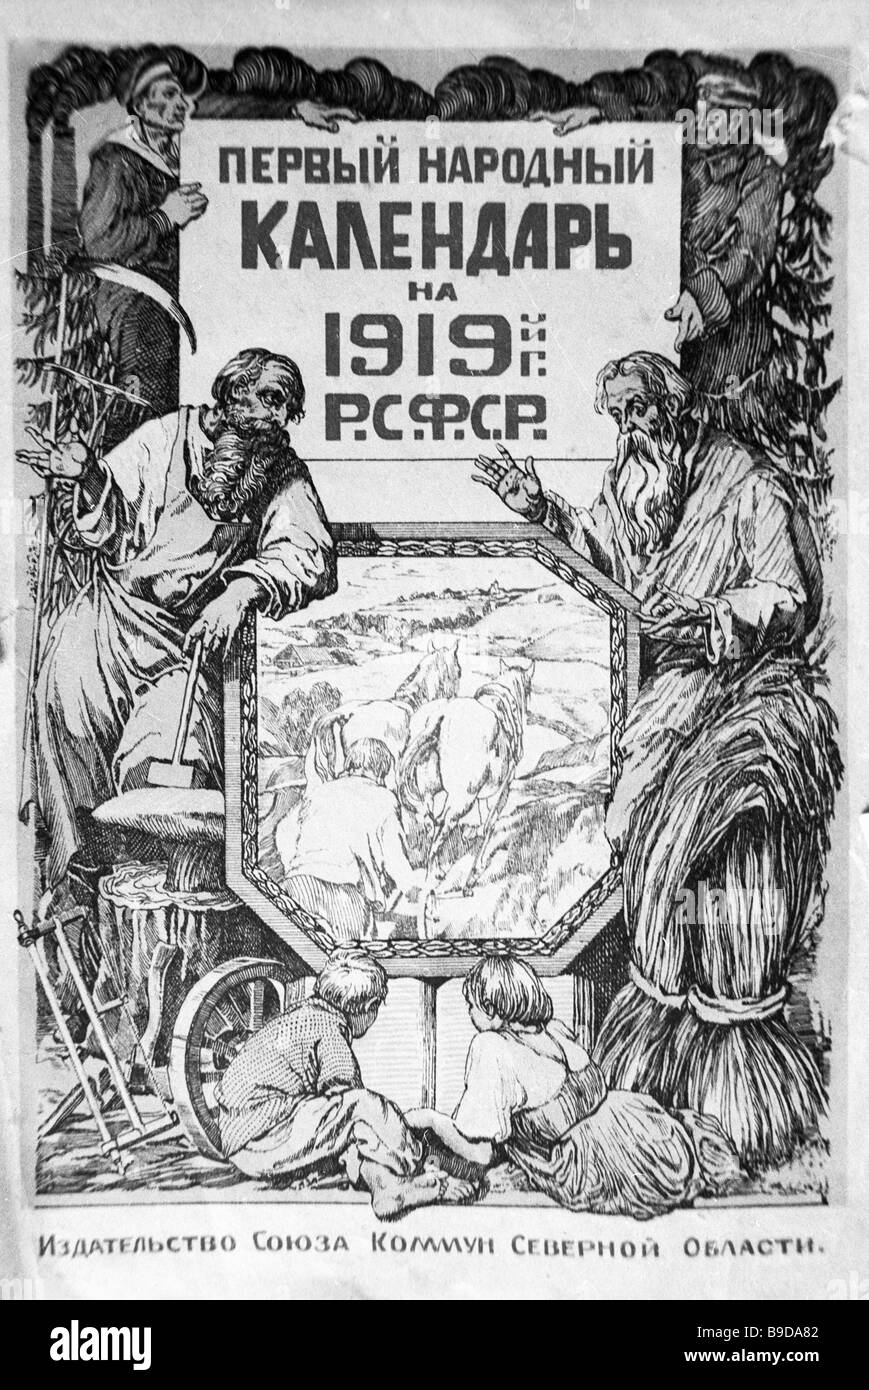 Reproduction of The first popular calendar for 1919 issued by the Union of the Northern Region s Communes - Stock Image